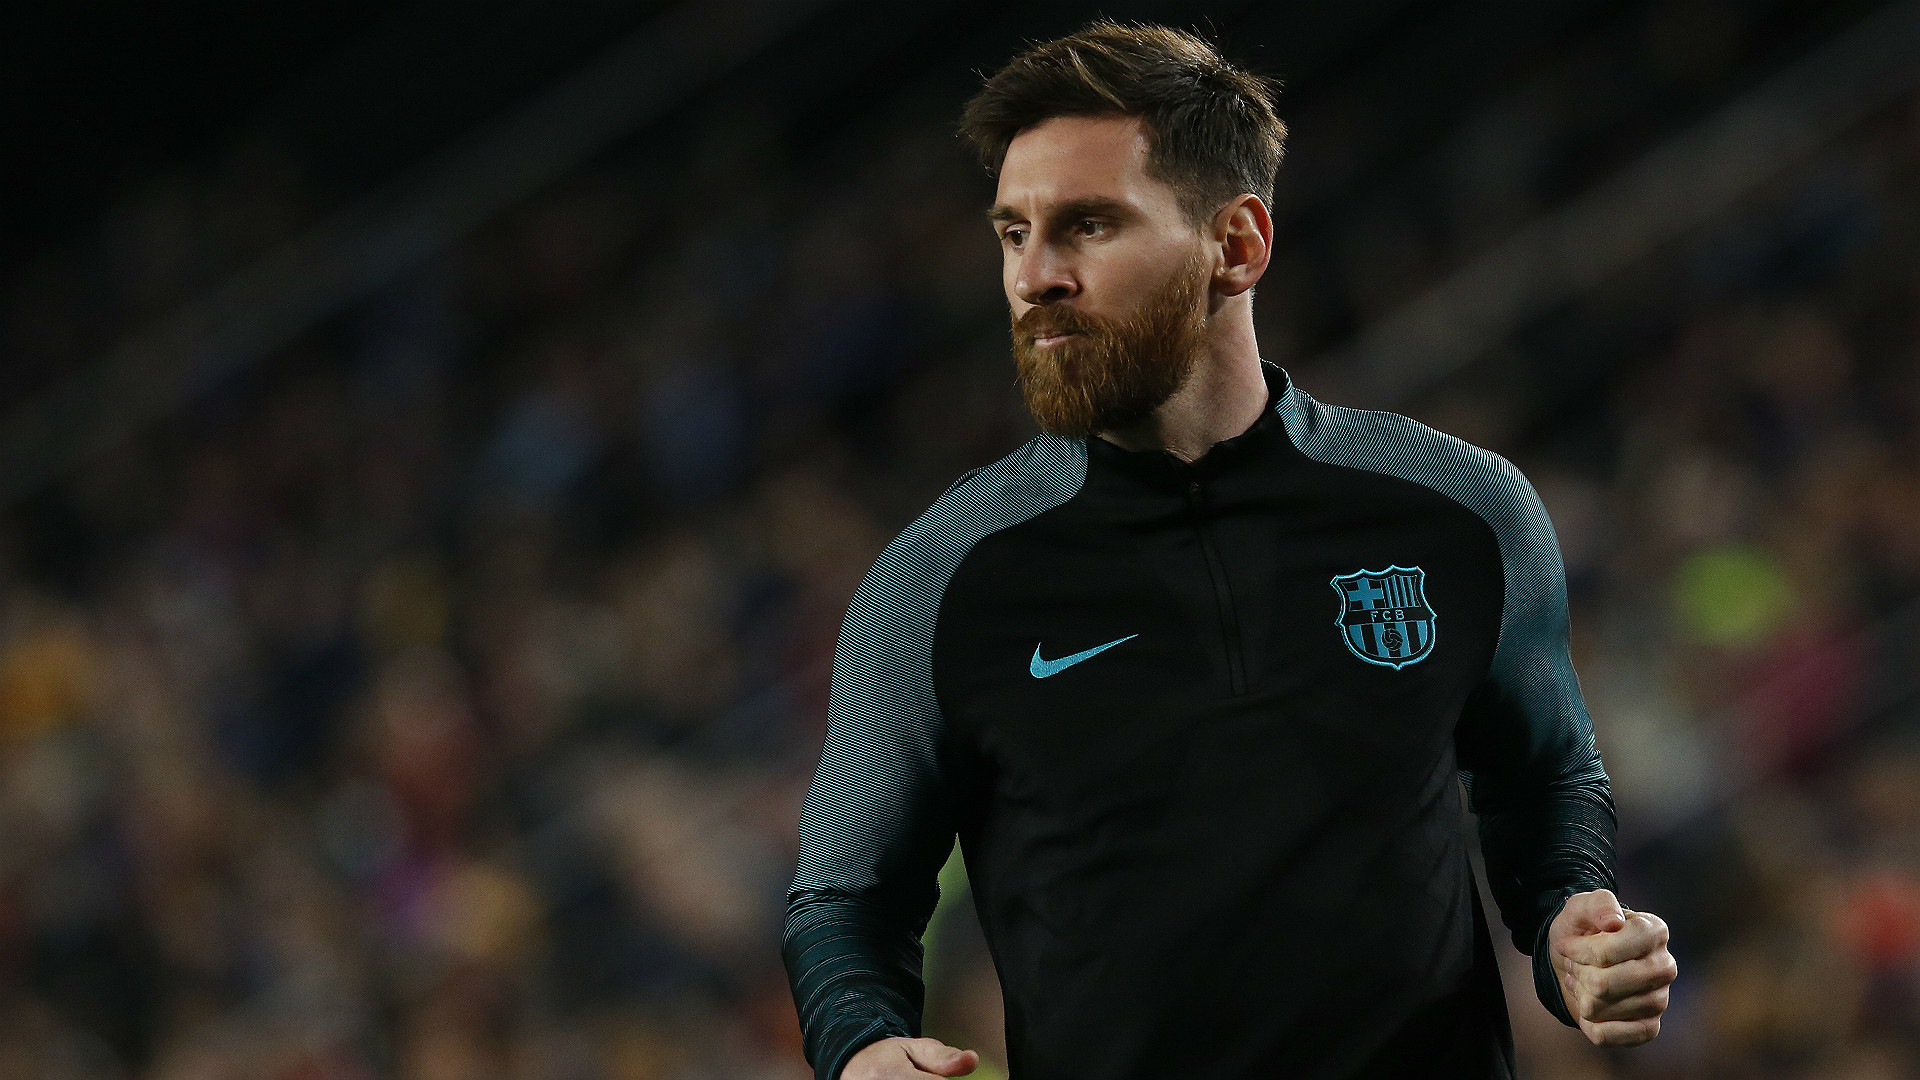 Leo Messi Lionel Messi 2018 Wallpapers 80 43 Images